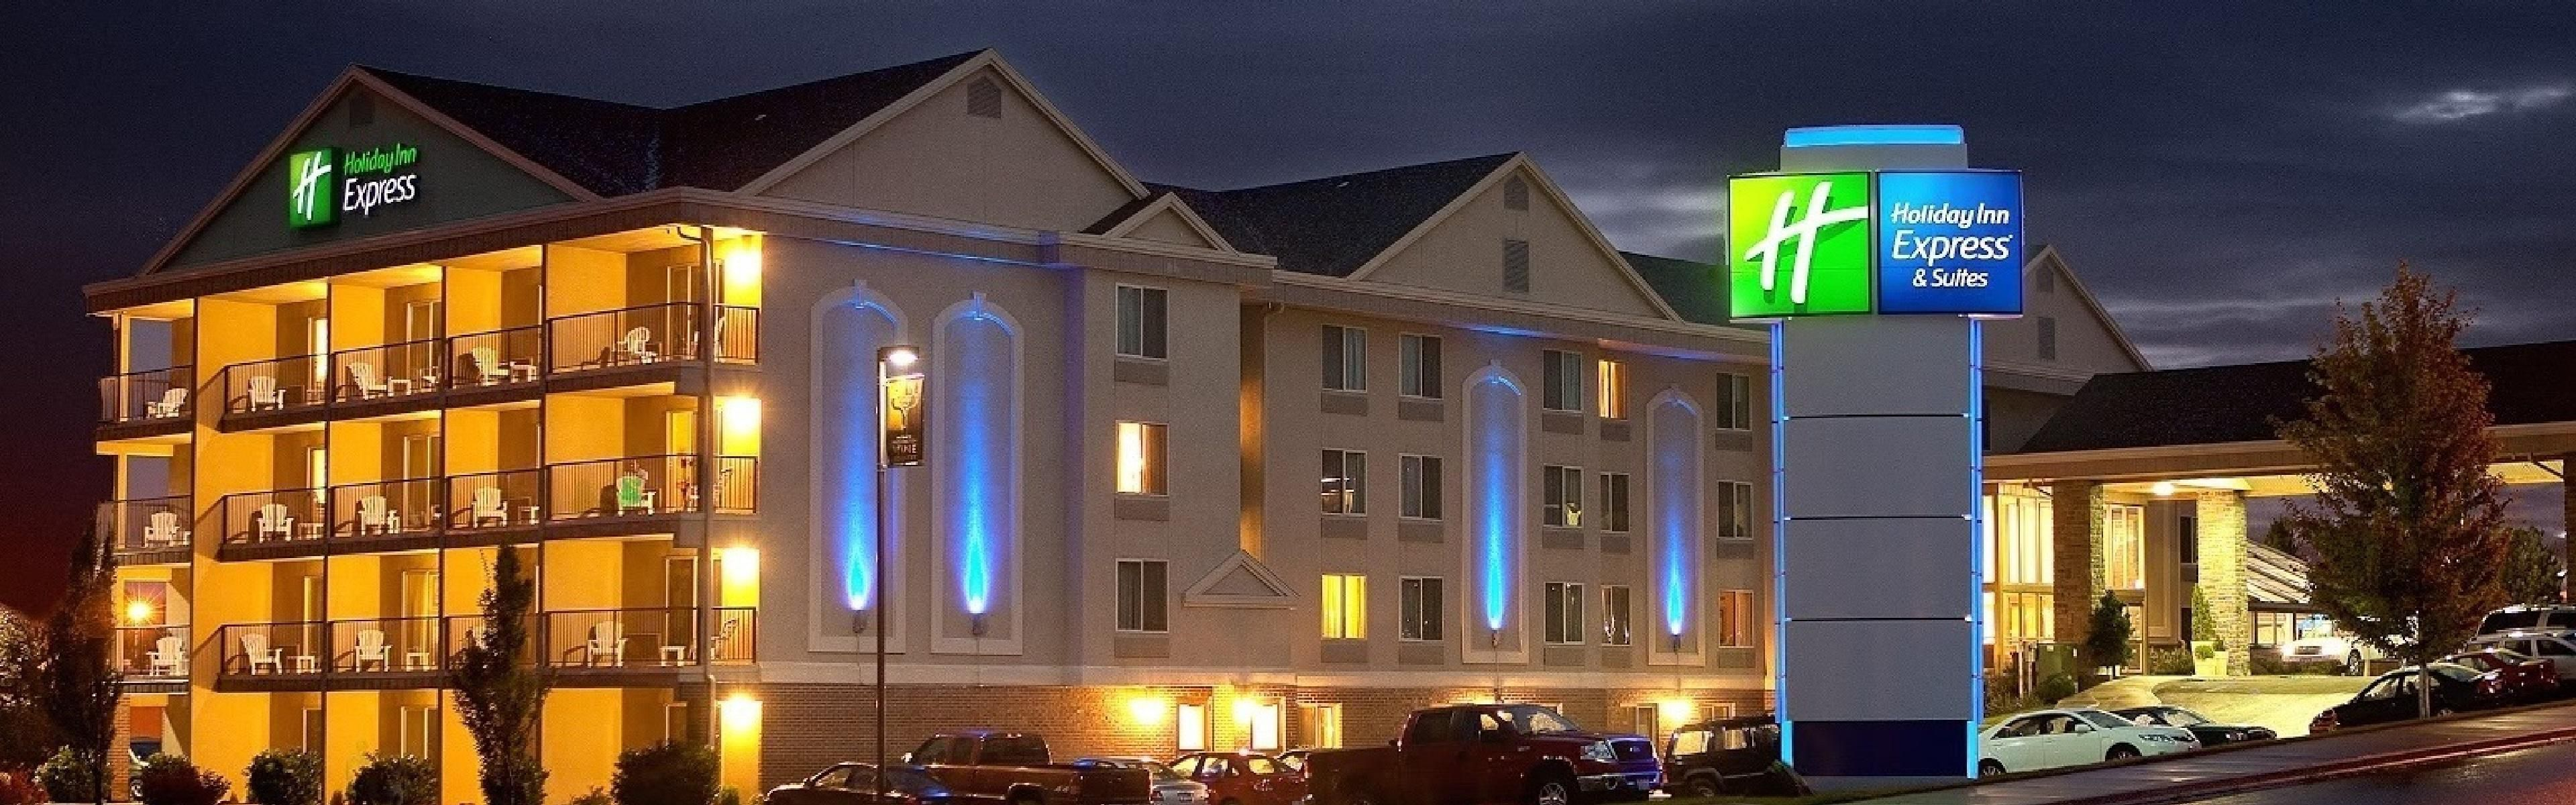 Holiday Inn Express & Suites Richland image 0